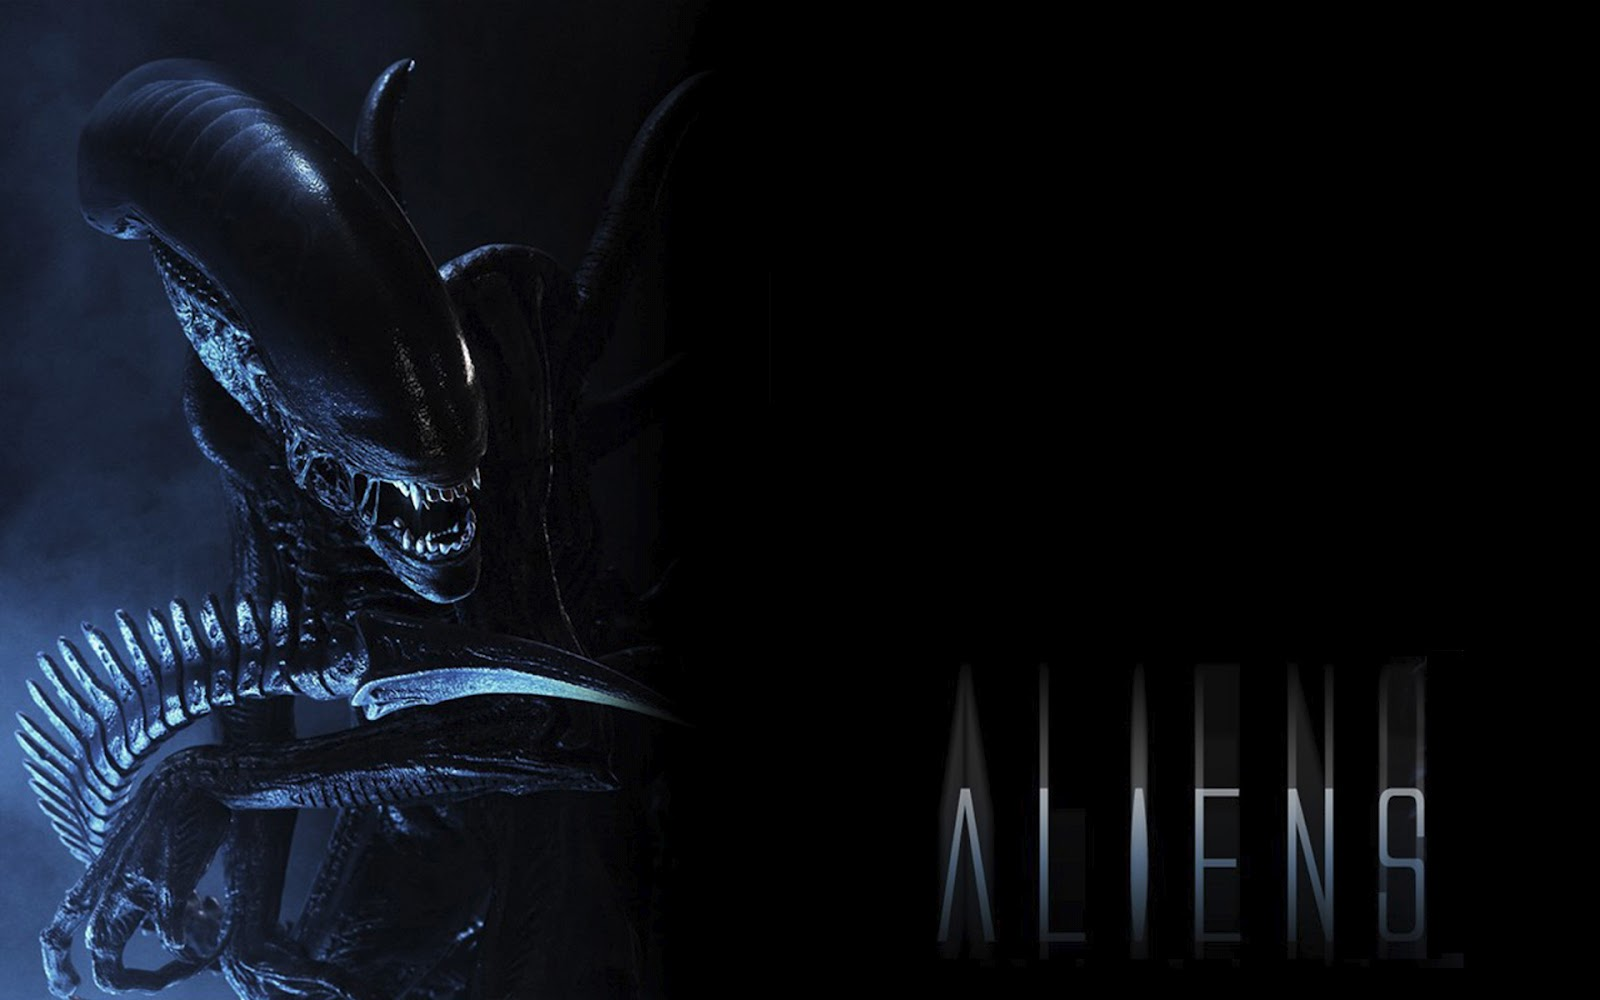 http://1.bp.blogspot.com/-huDNuIHsPHk/UBHhCCDFBsI/AAAAAAAACTA/A57vyowq4wE/s1600/Alien+Series+Movie+wallpapers+11.jpg